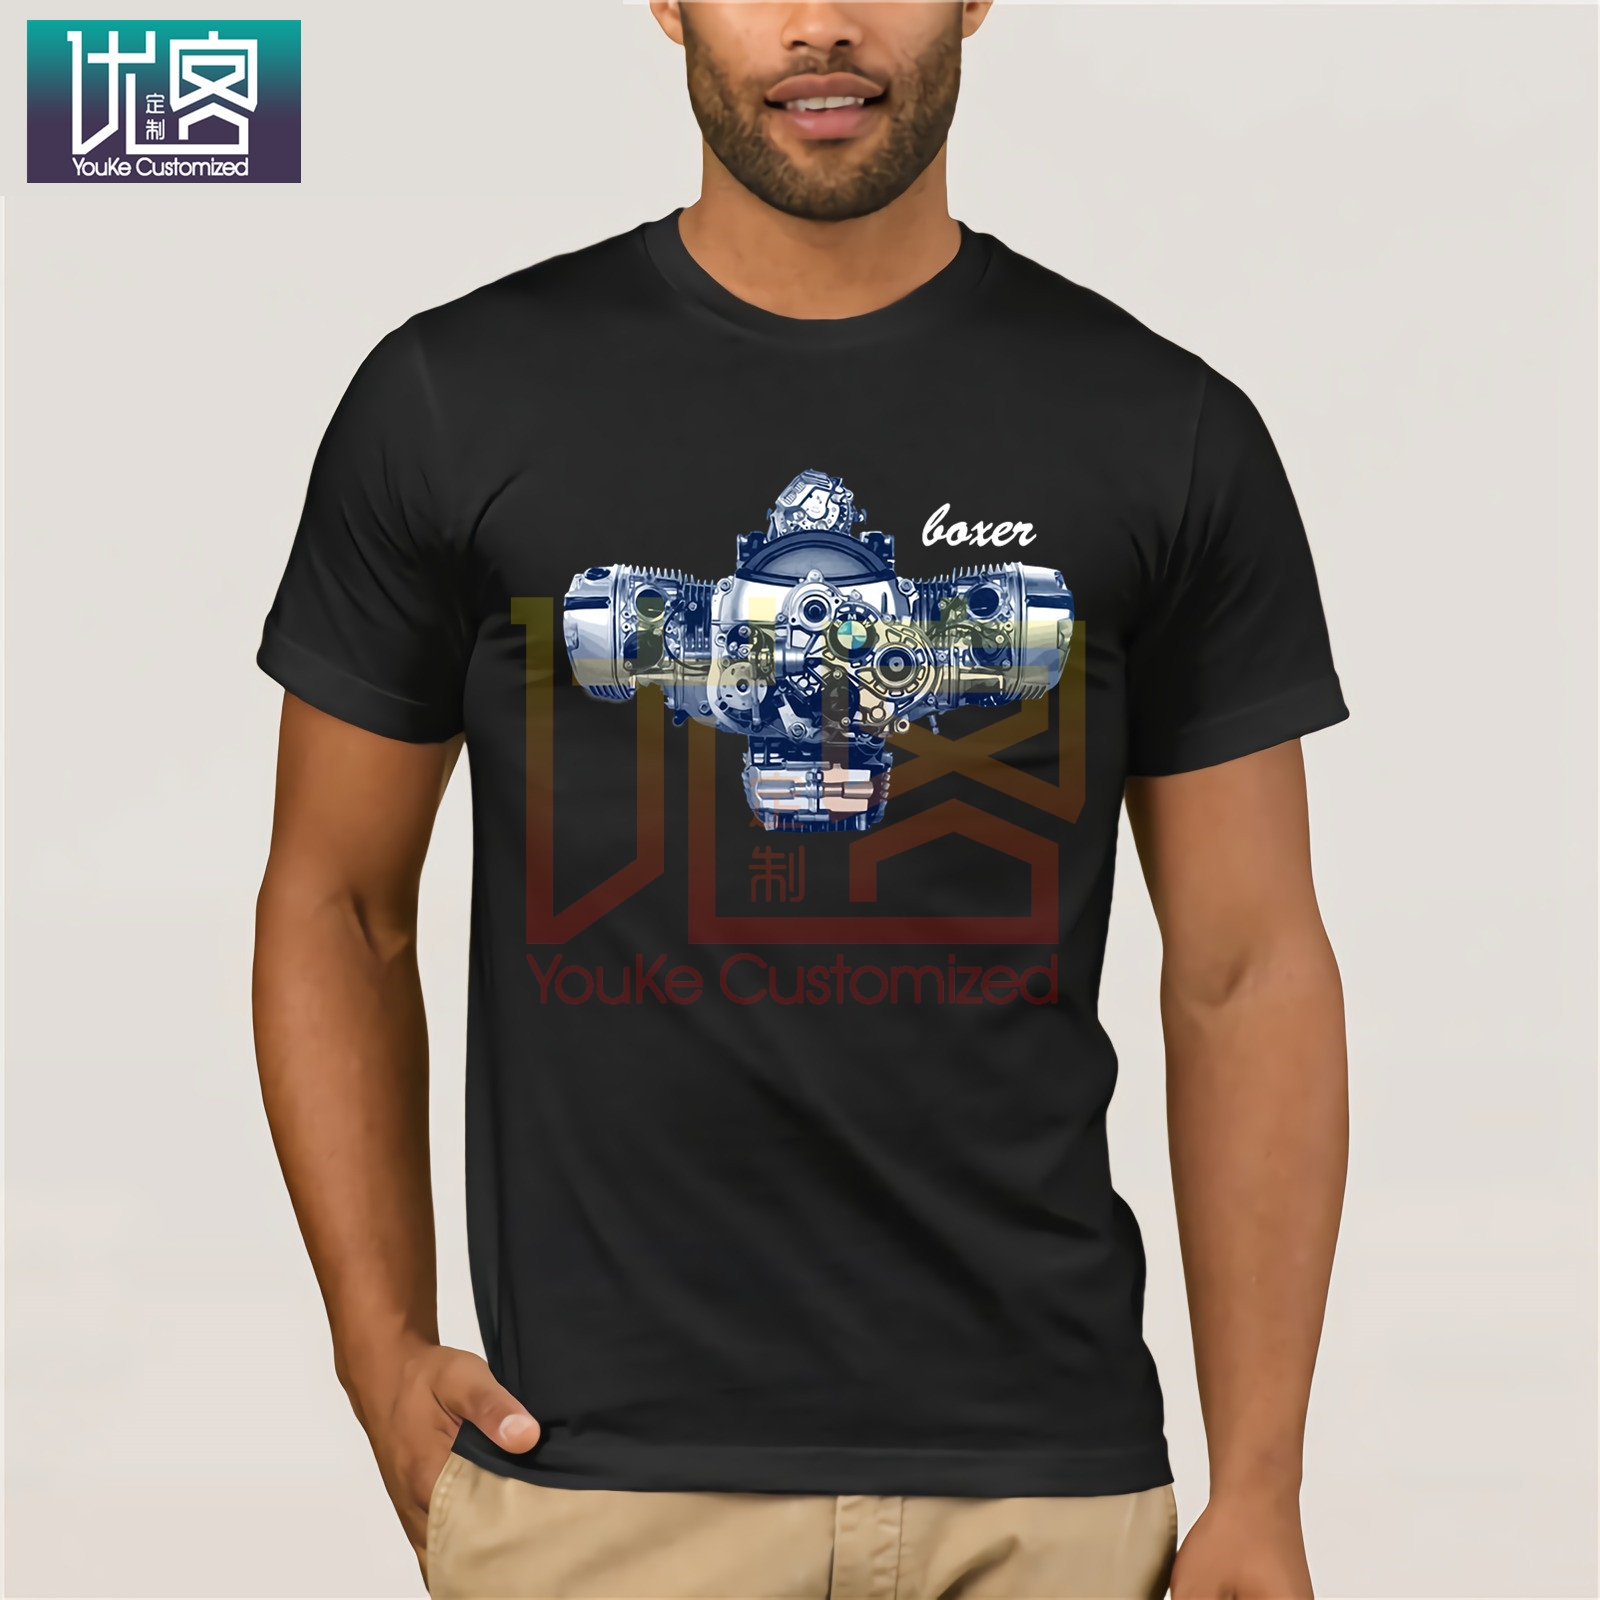 Boxer Engine R1200GS RT 1200 <font><b>GS</b></font> R Adventure R1200RT R1200R navy <font><b>tshirt</b></font> 9799 for women women brand <font><b>tshirt</b></font> image